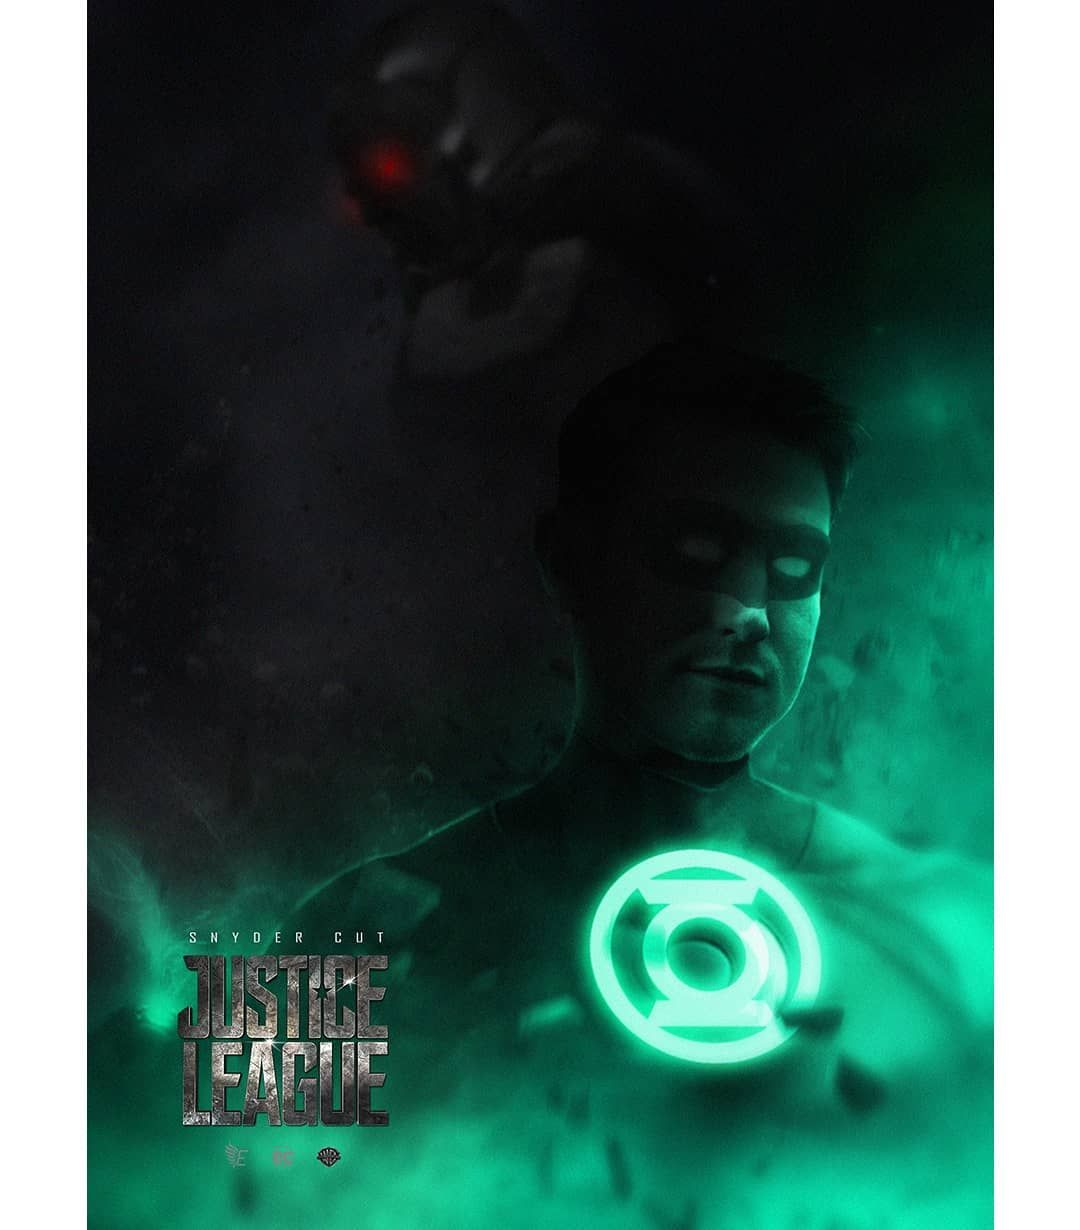 The last one of the JL Series (7) Green Lantern. @sambenjaminnow as Green Lantern. I guess he was t